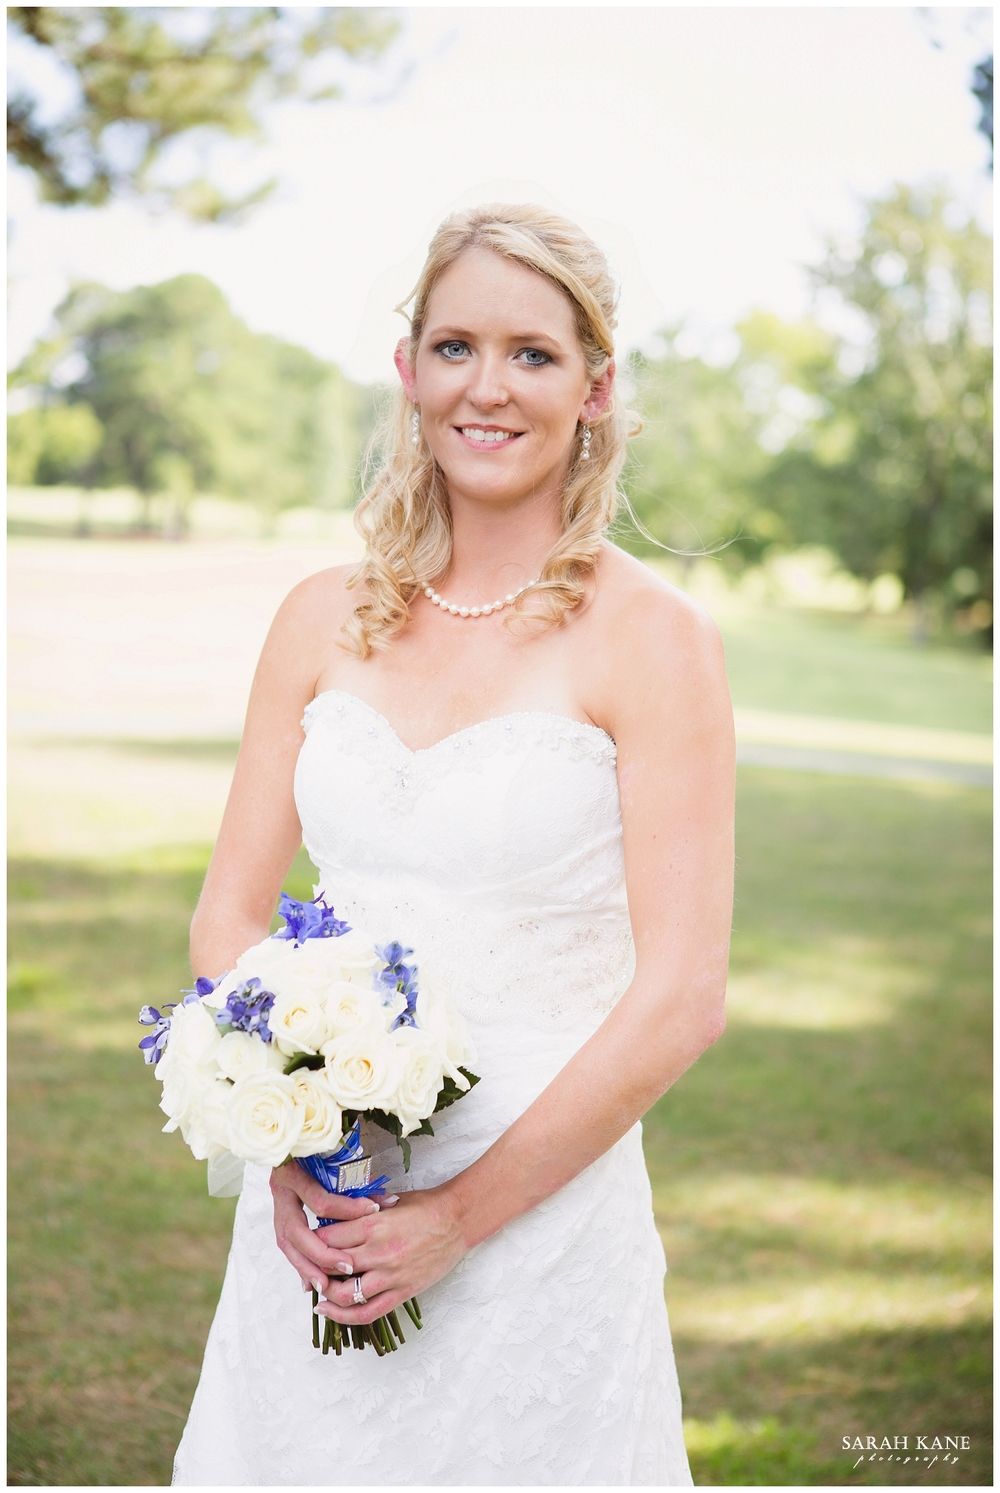 Blog - Petersburg VA Wedding - Sarah Kane Photography 001.JPG